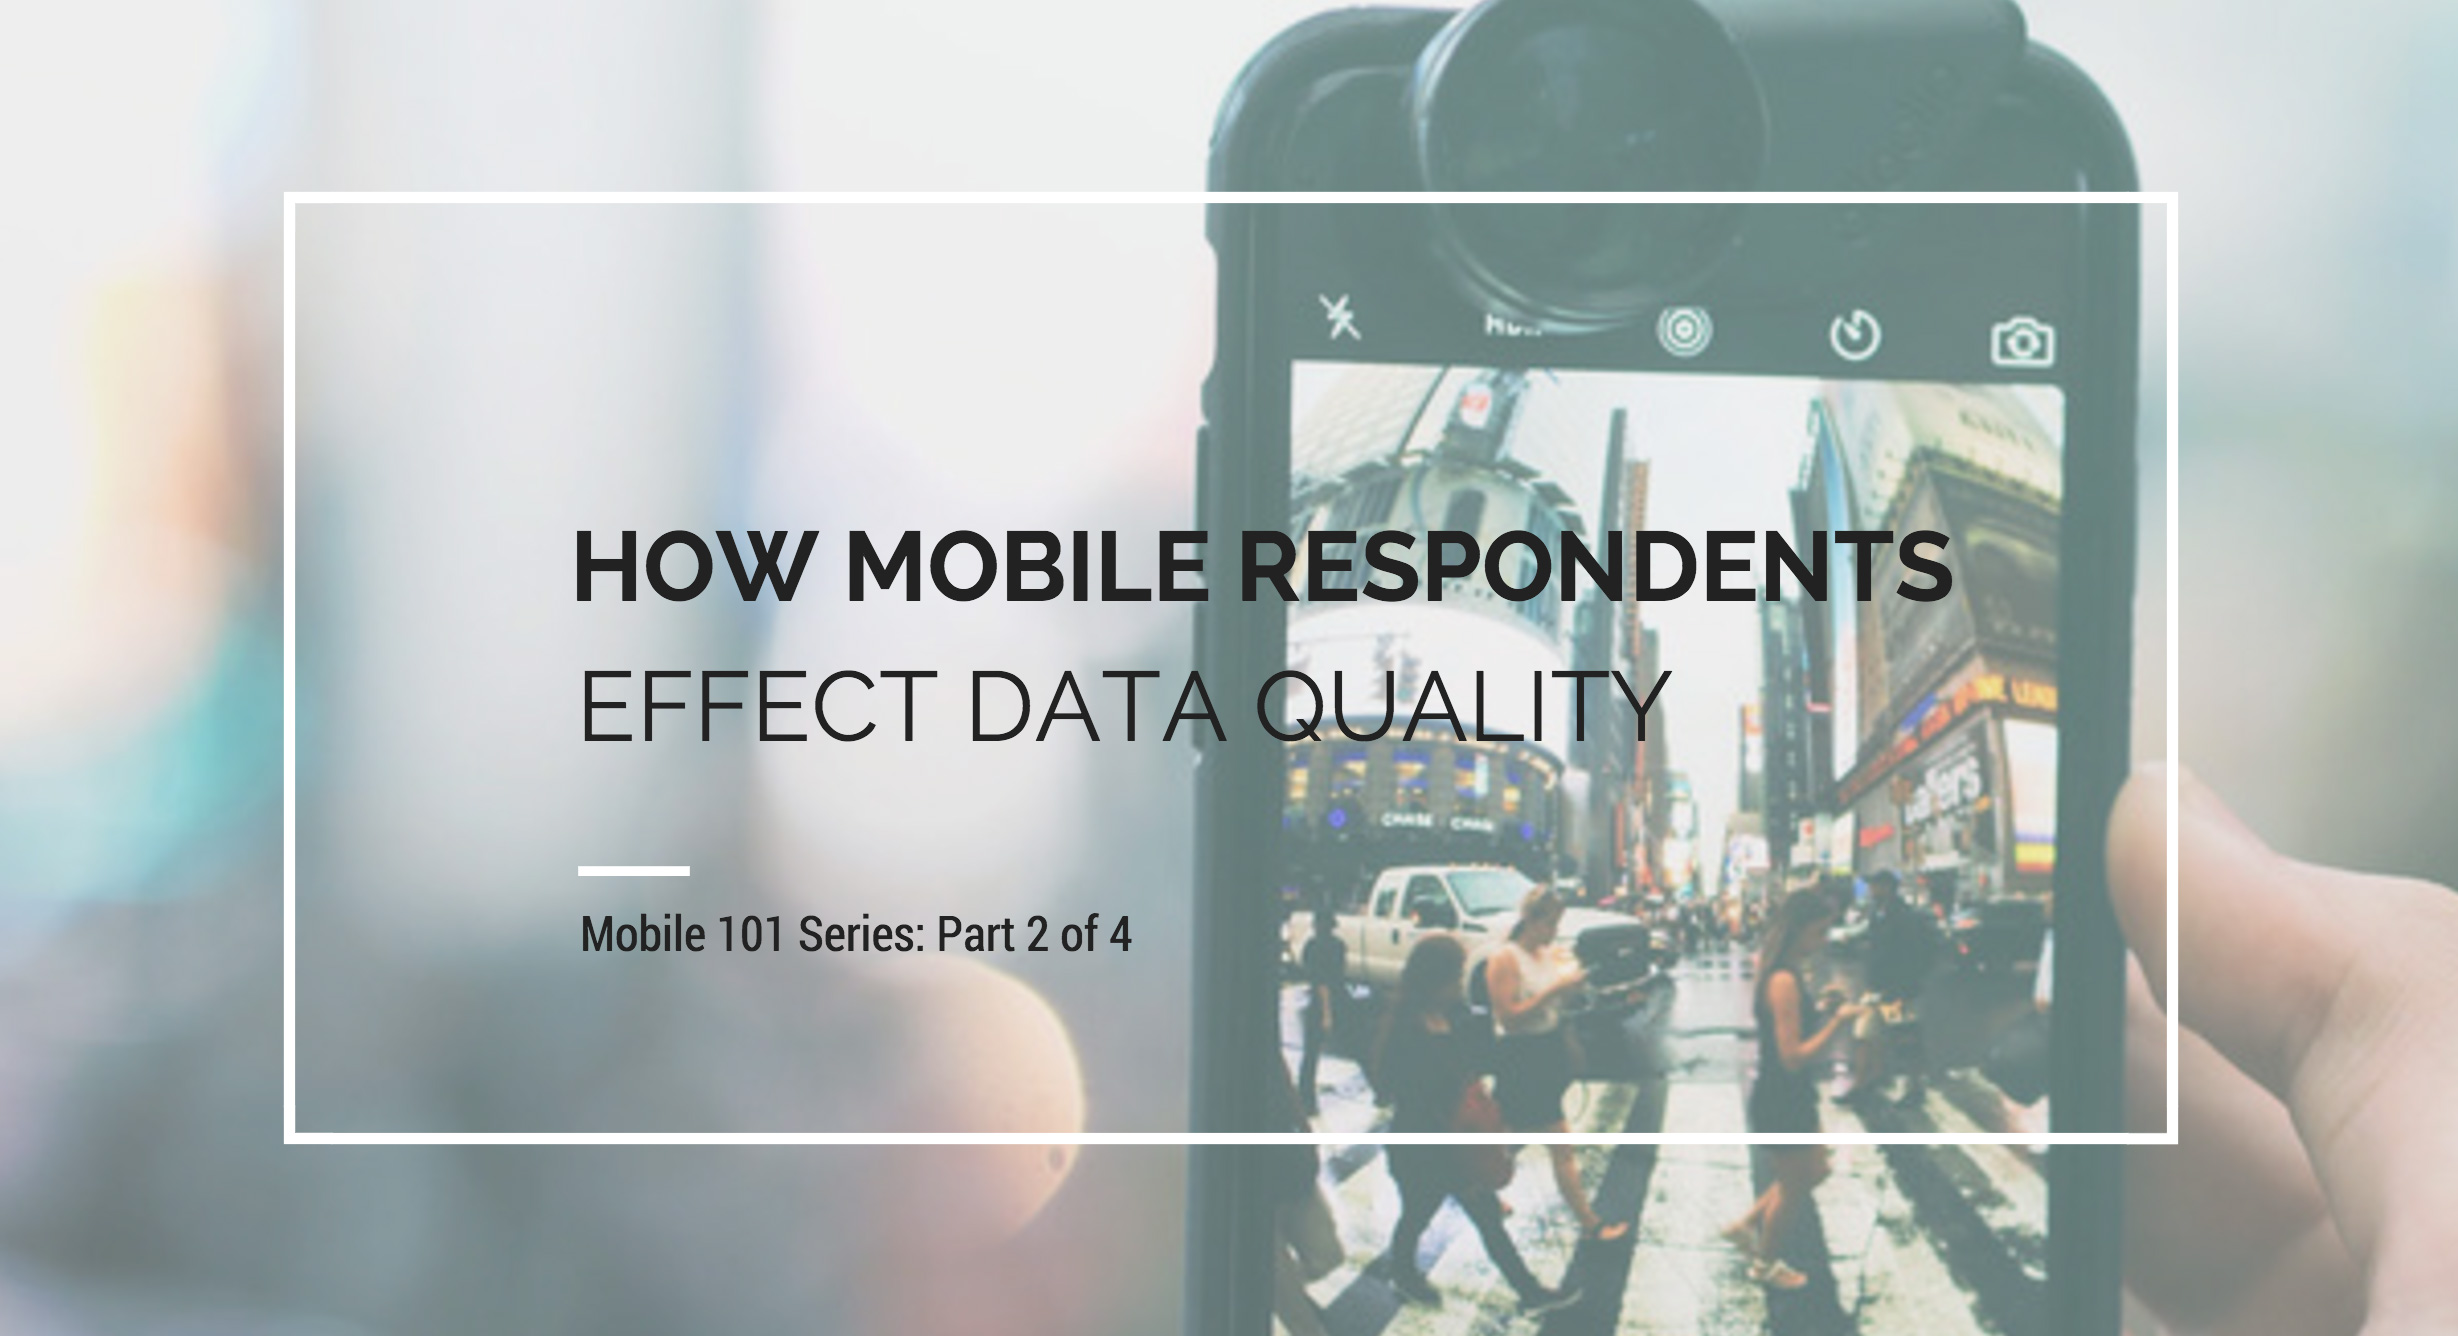 How mobile respondents can effect data quality